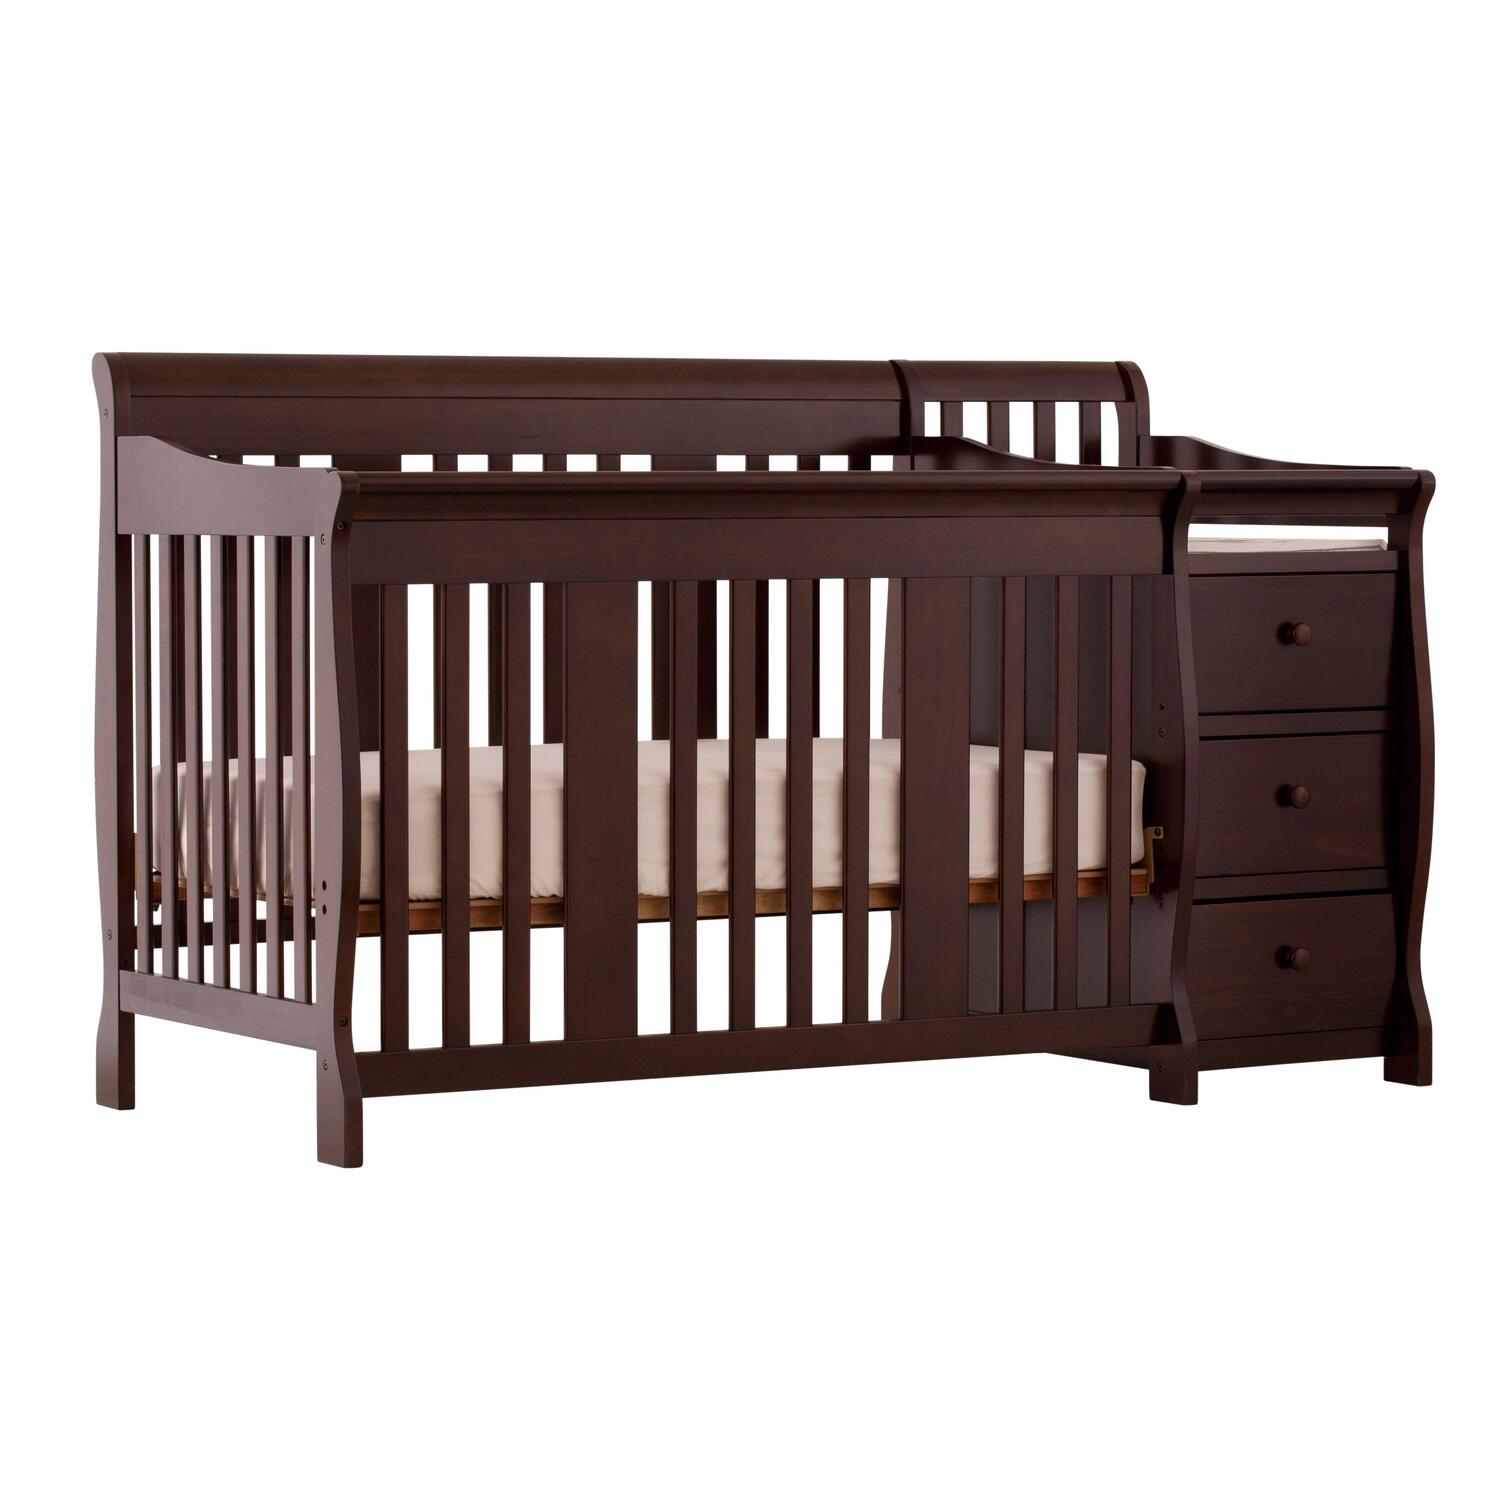 stork craft portofino 4 in 1 fixed side convertible crib changer espresso